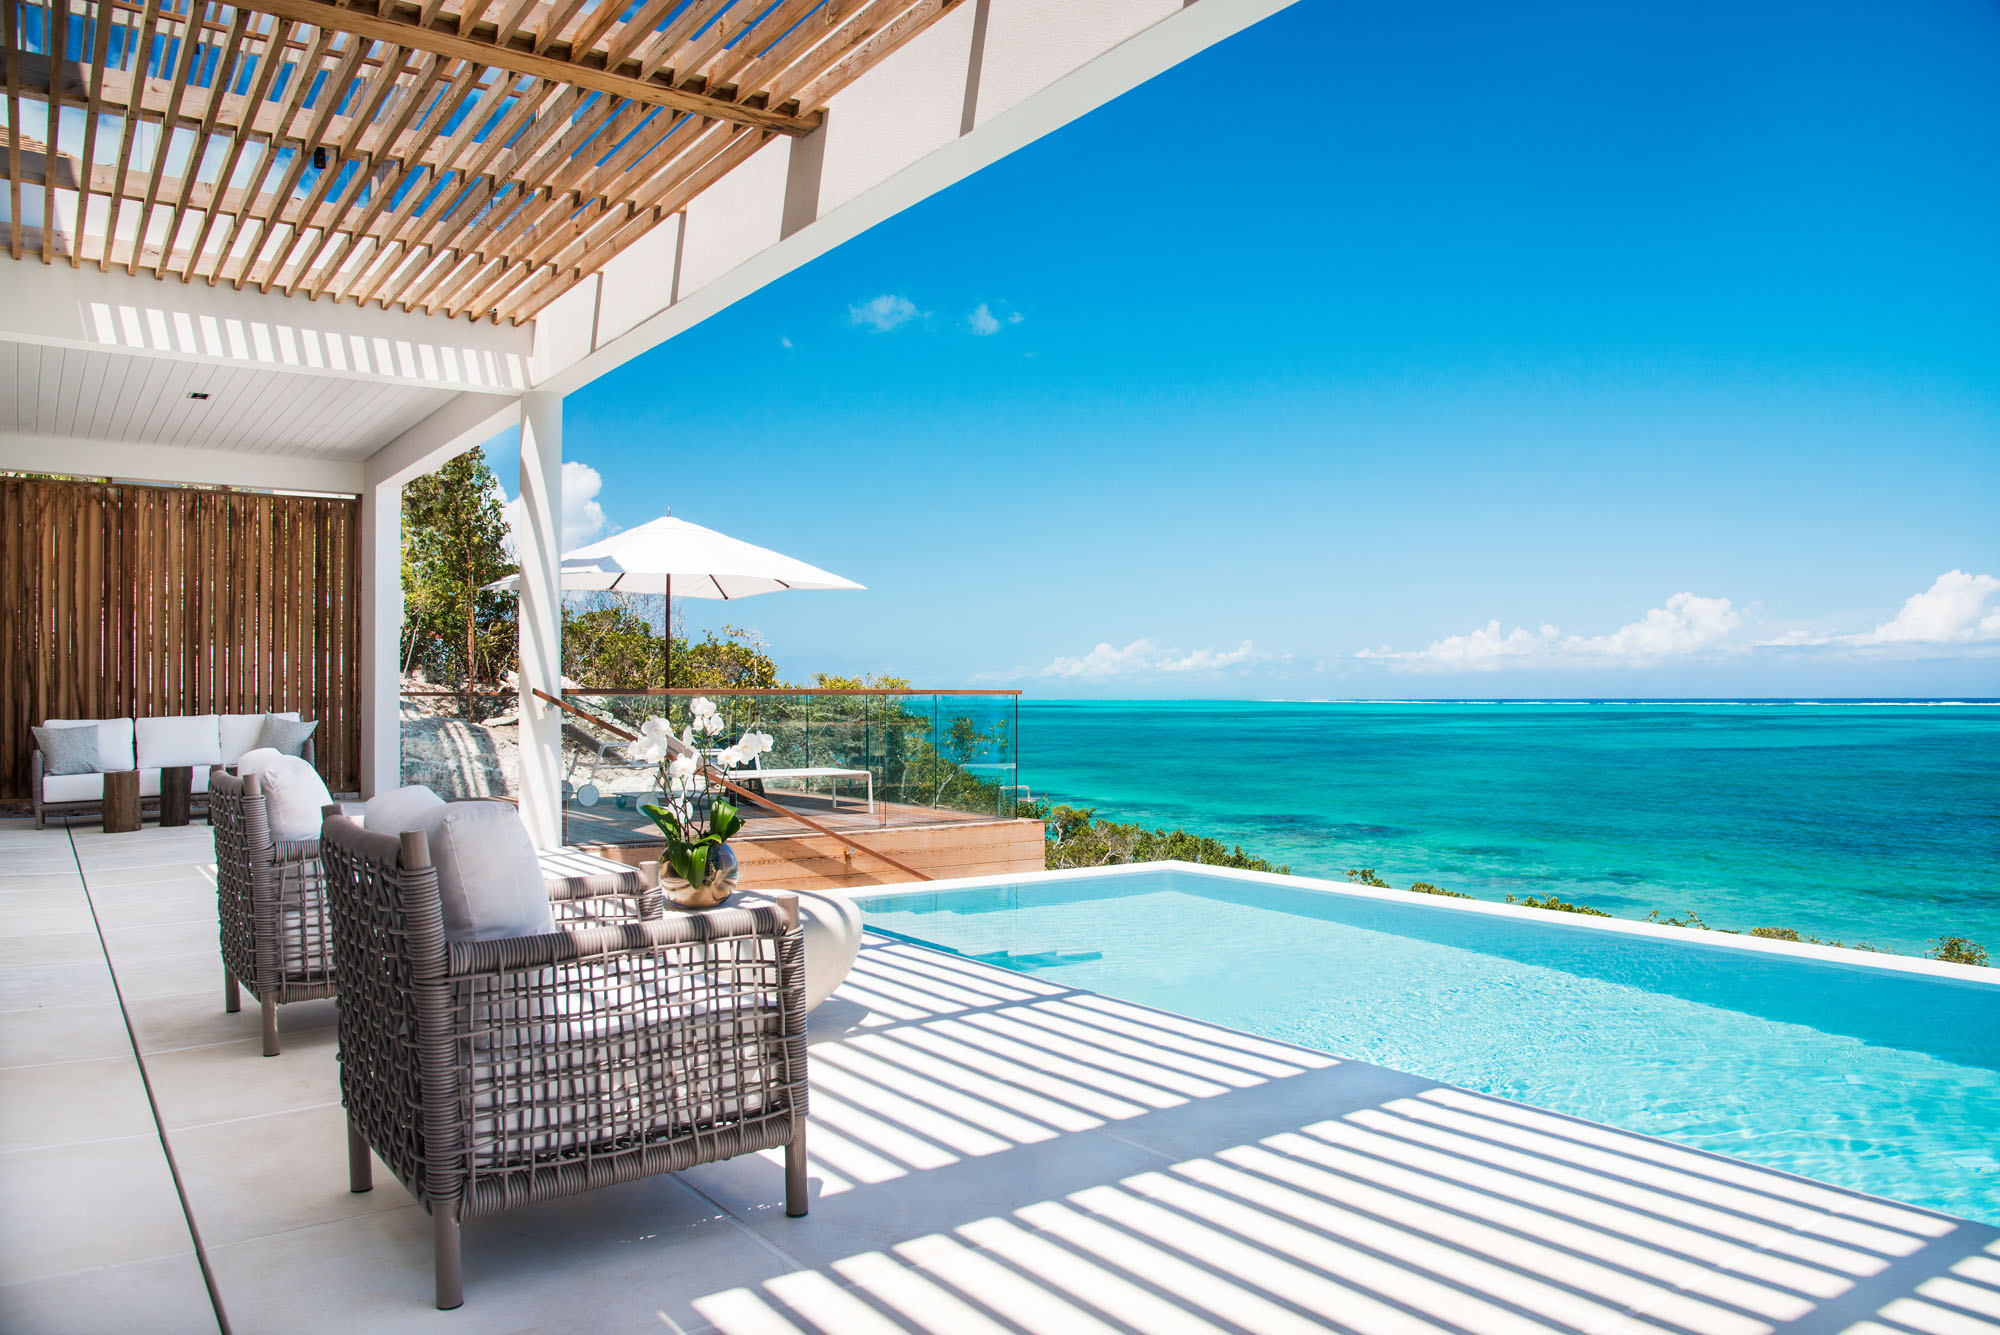 These Turks and Caicos luxury beach villa rentals are thoughtfully decorated throughout.